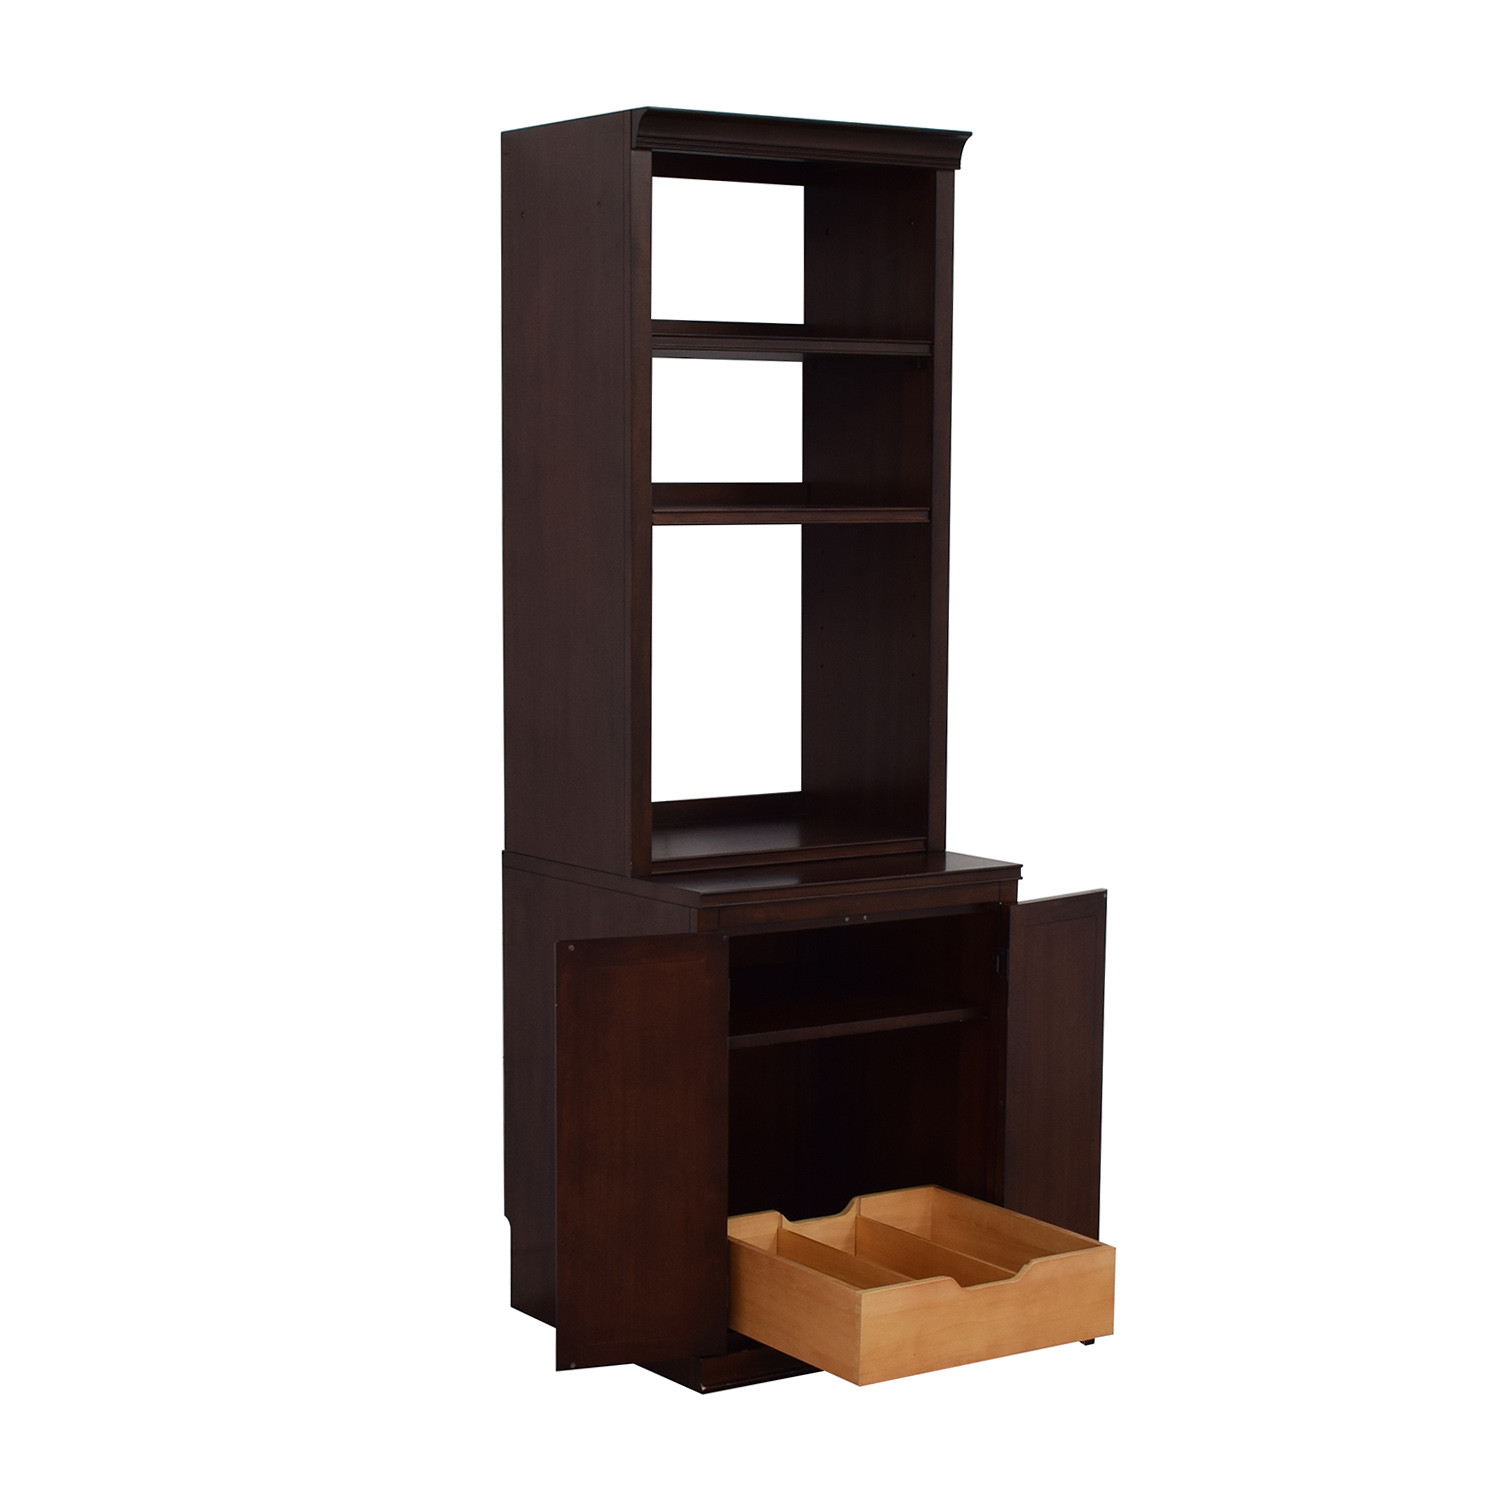 Pottery Barn Pottery Barn Bookcase with Storage Cabinet brown